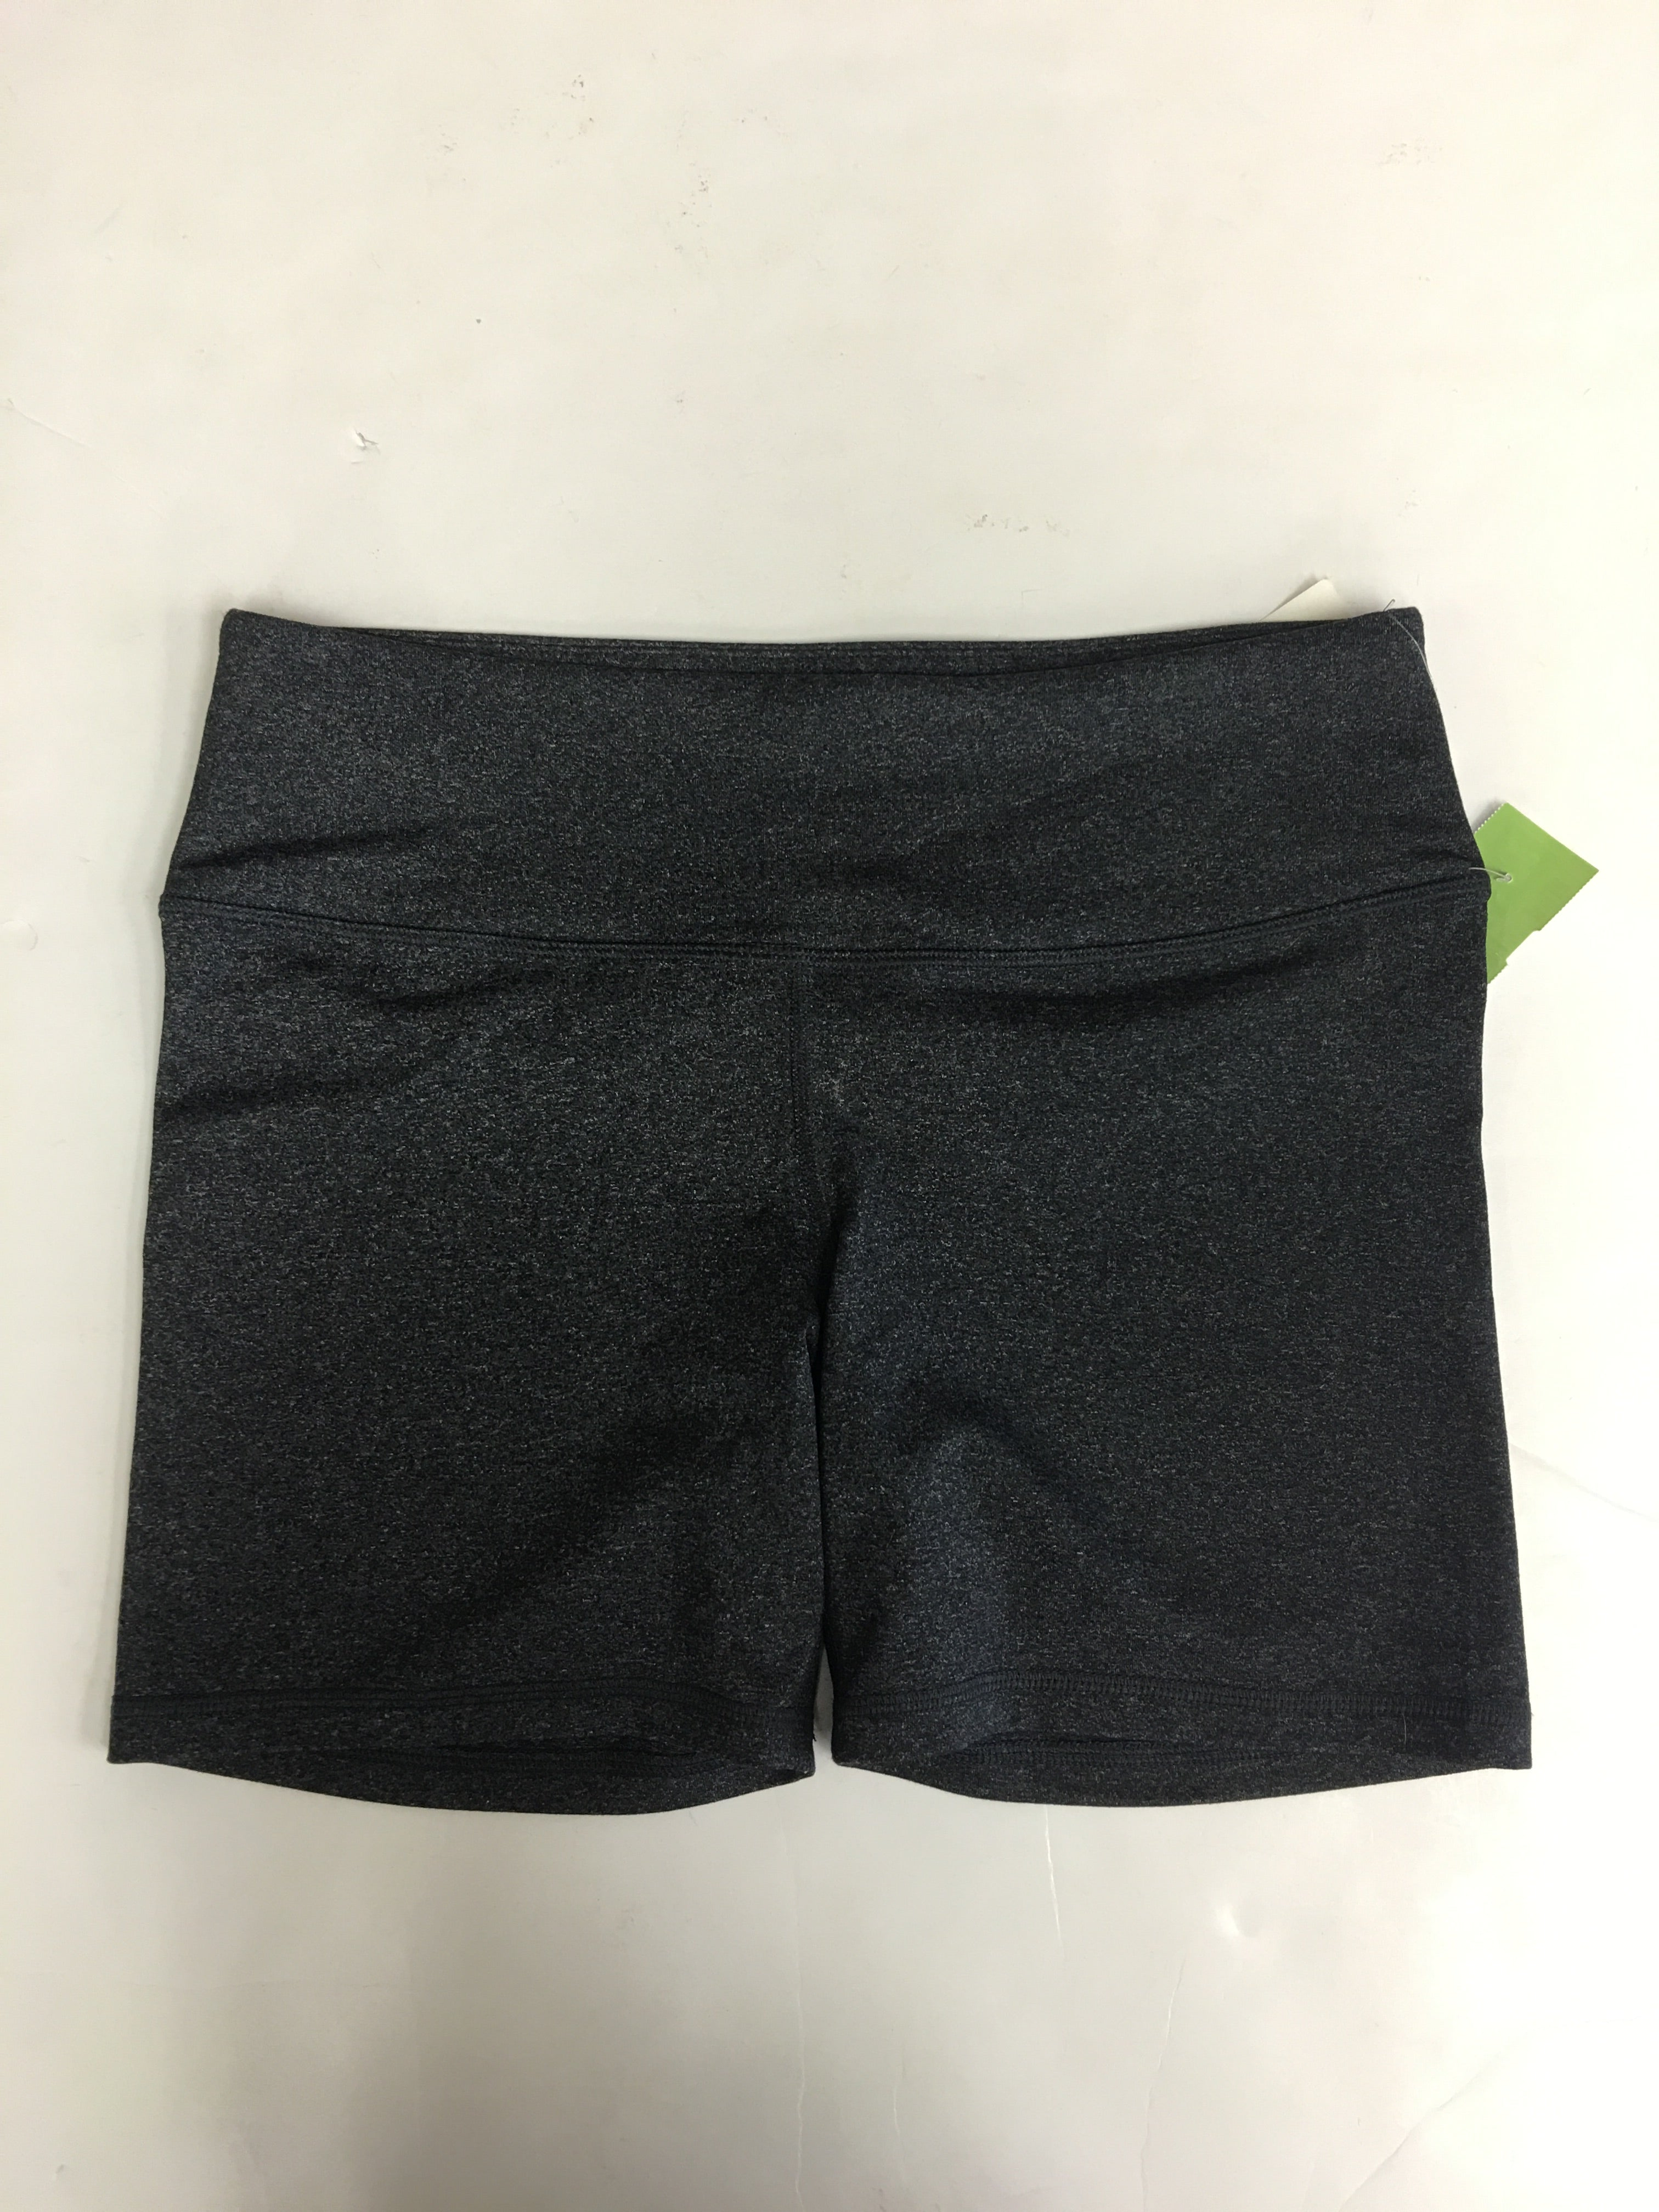 Primary Photo - BRAND: 90 DEGREES BY REFLEX <BR>STYLE: ATHLETIC SHORTS <BR>COLOR: GREY <BR>SIZE: M <BR>OTHER INFO: NEW! COMPARE $18 <BR>SKU: 198-19888-32702